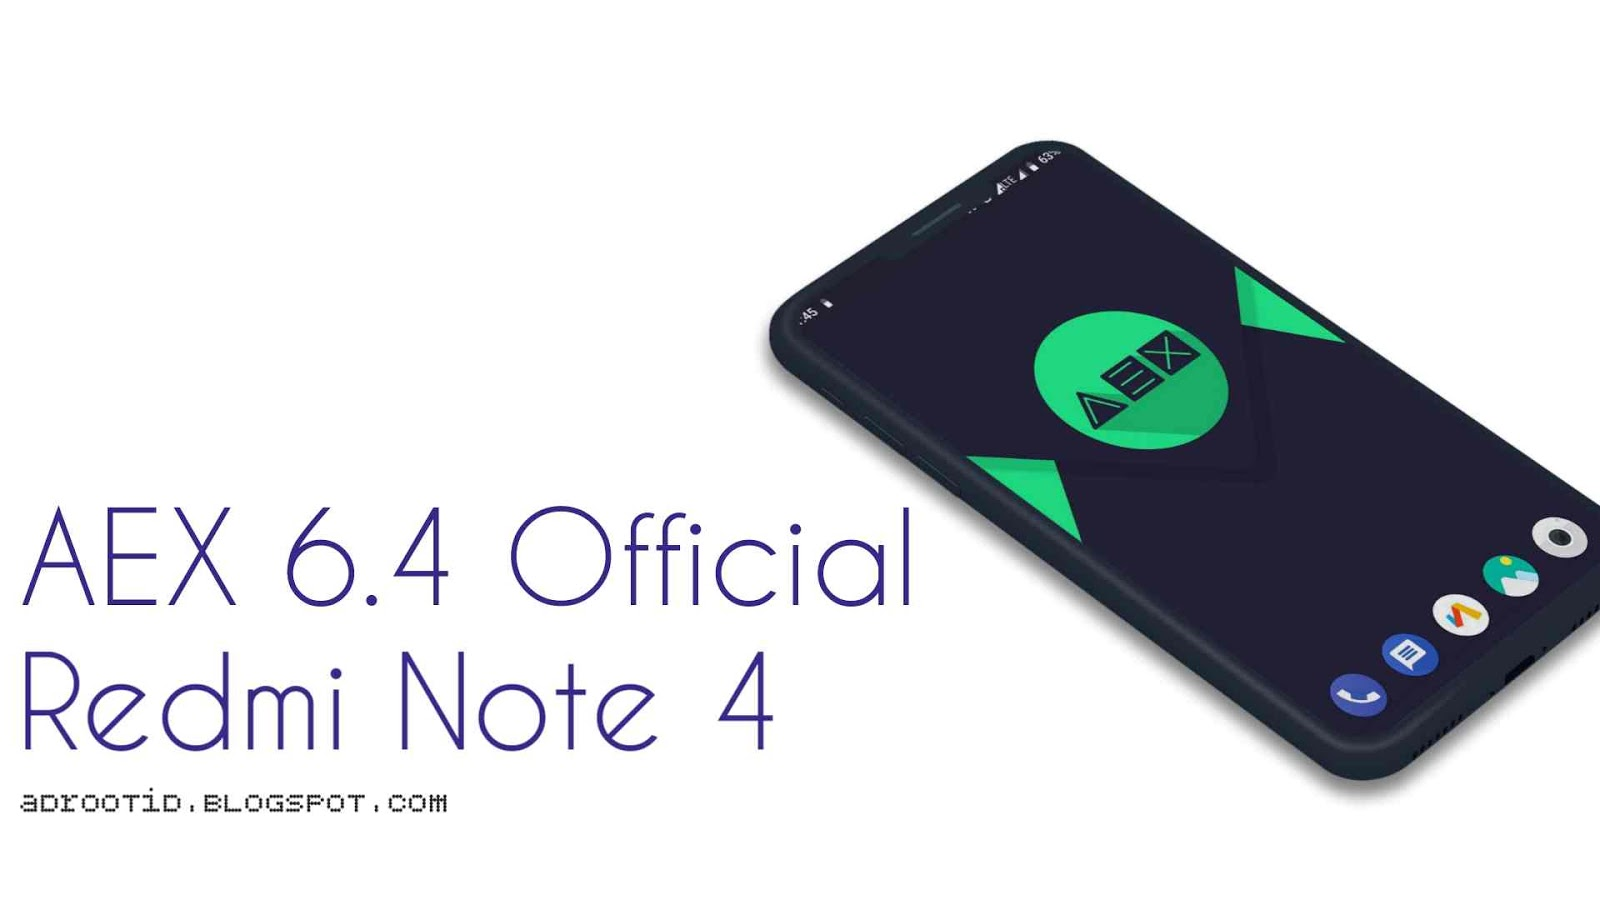 Rom aex 6.4 redmi note 4